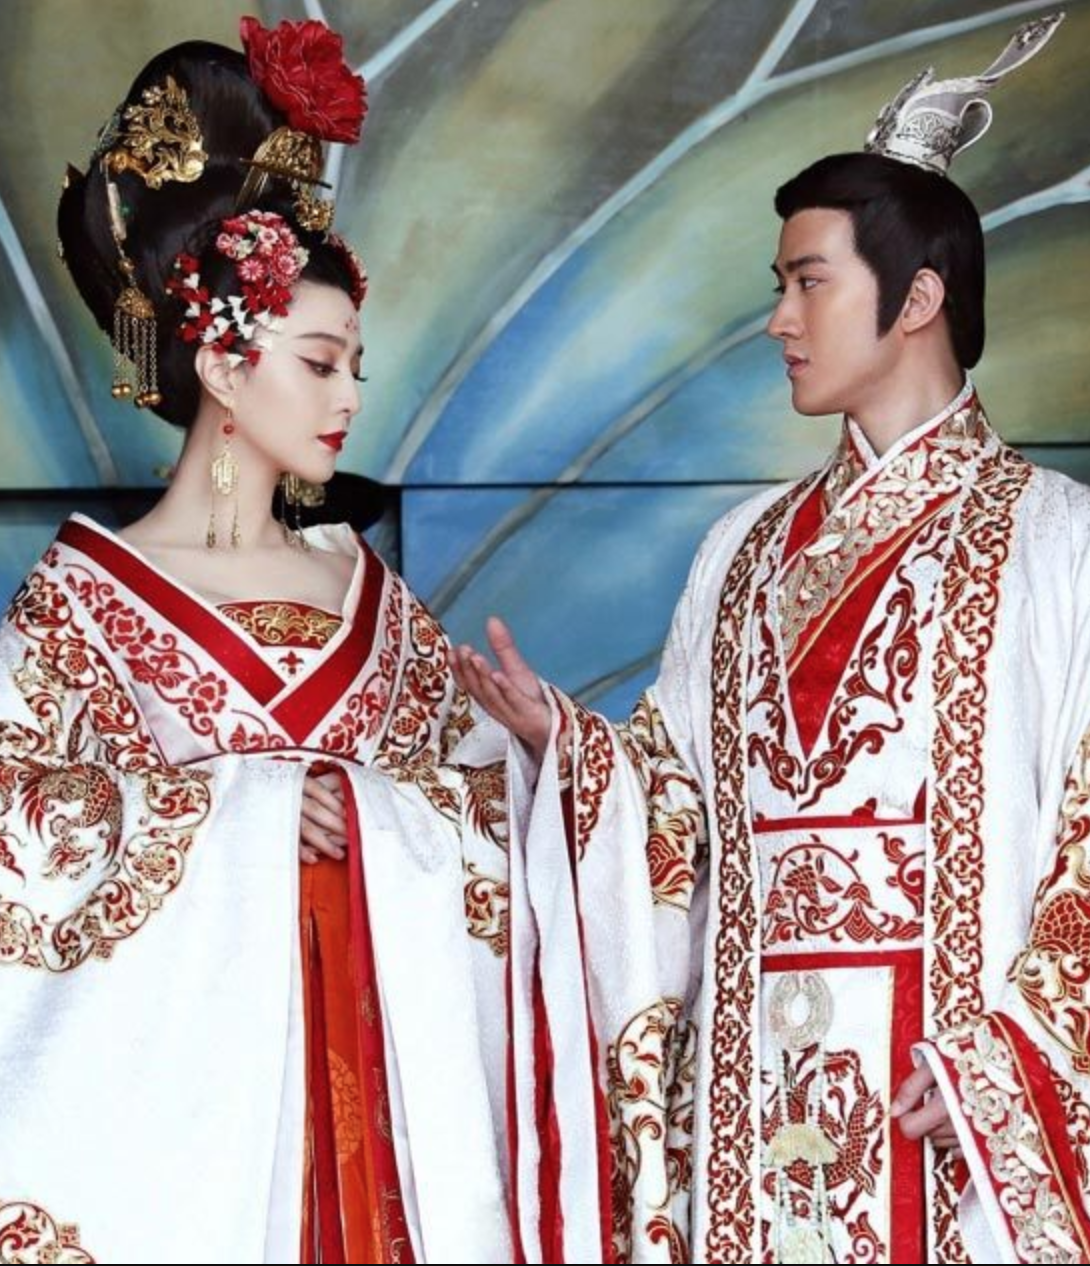 The History Of The Concubine Who Became The Cruelest Ruler